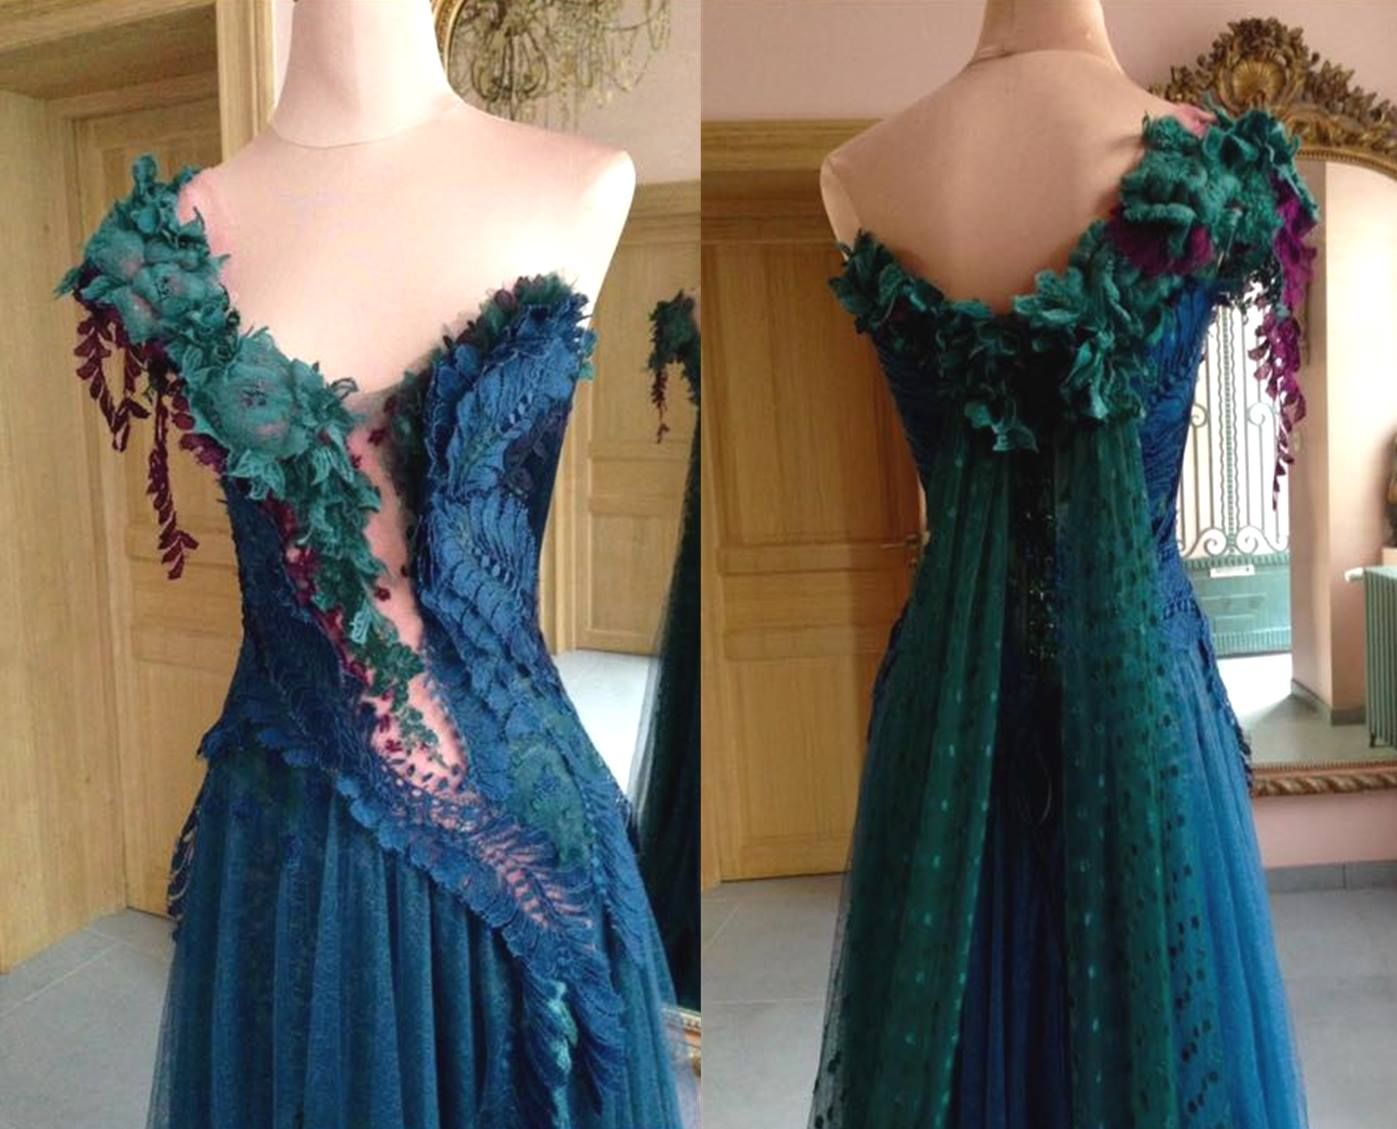 Stunning lace, tulle and organdy dress by Sylvie Facon. This dress took 180 hours to create and used 14 metres of lace to create.  Image and information courtesy of the great Gilliodts dentellières d'Hondschoote Facebook page. via Embroiderer's Guild of Victoria